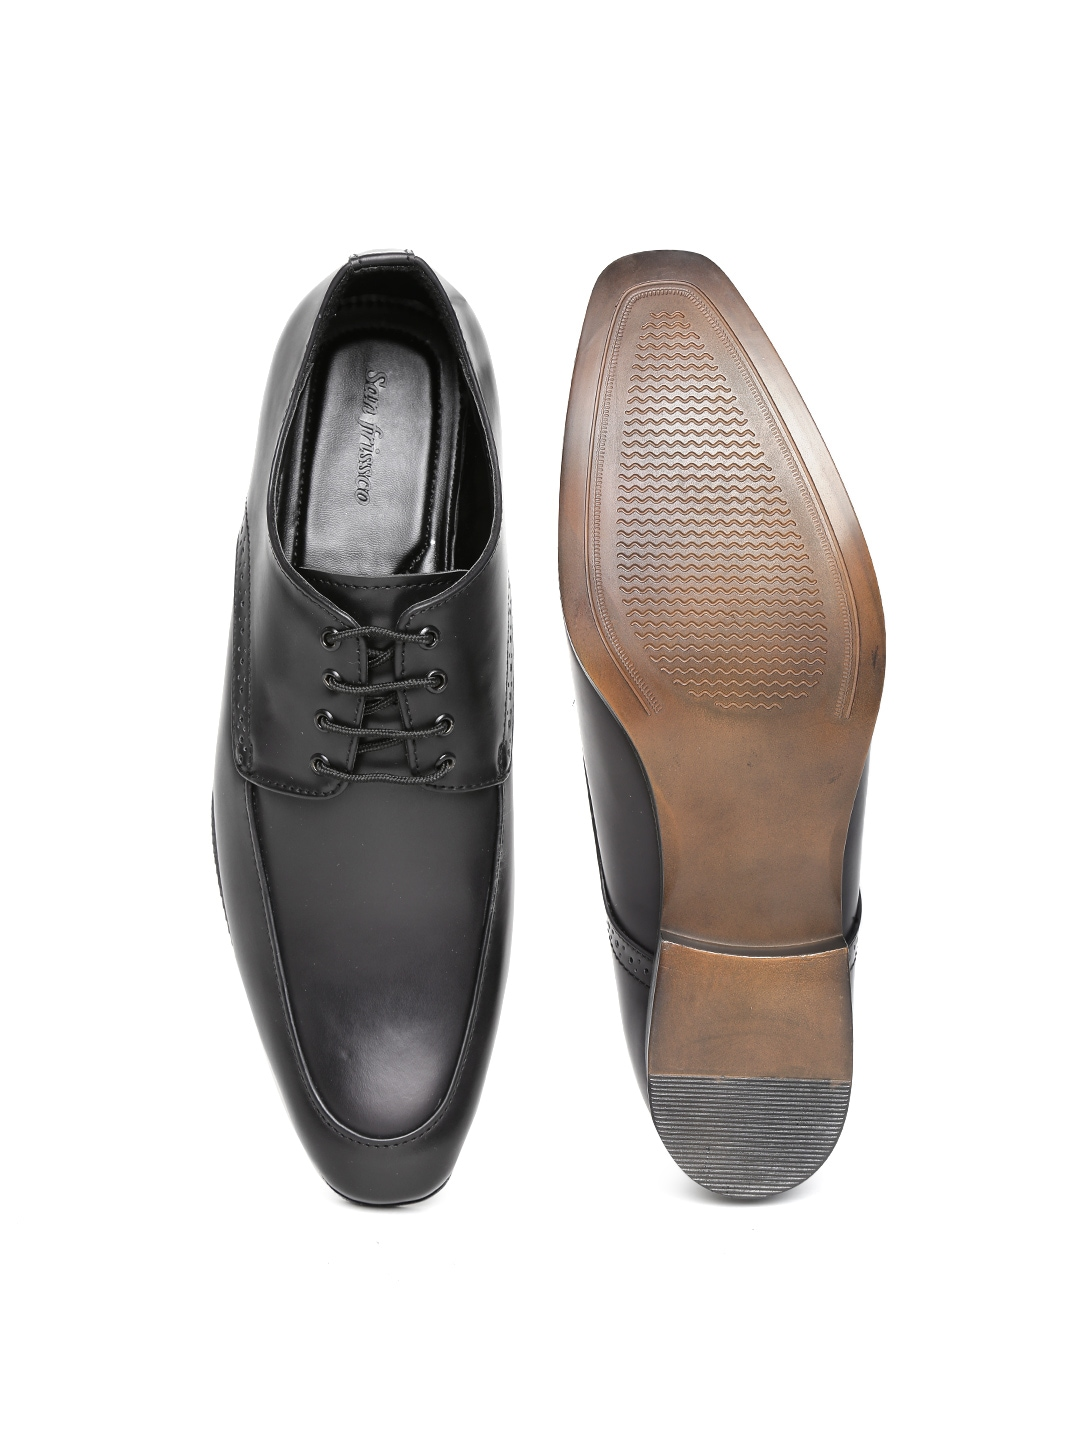 formal shoes price list in india 14 06 2017 buy formal